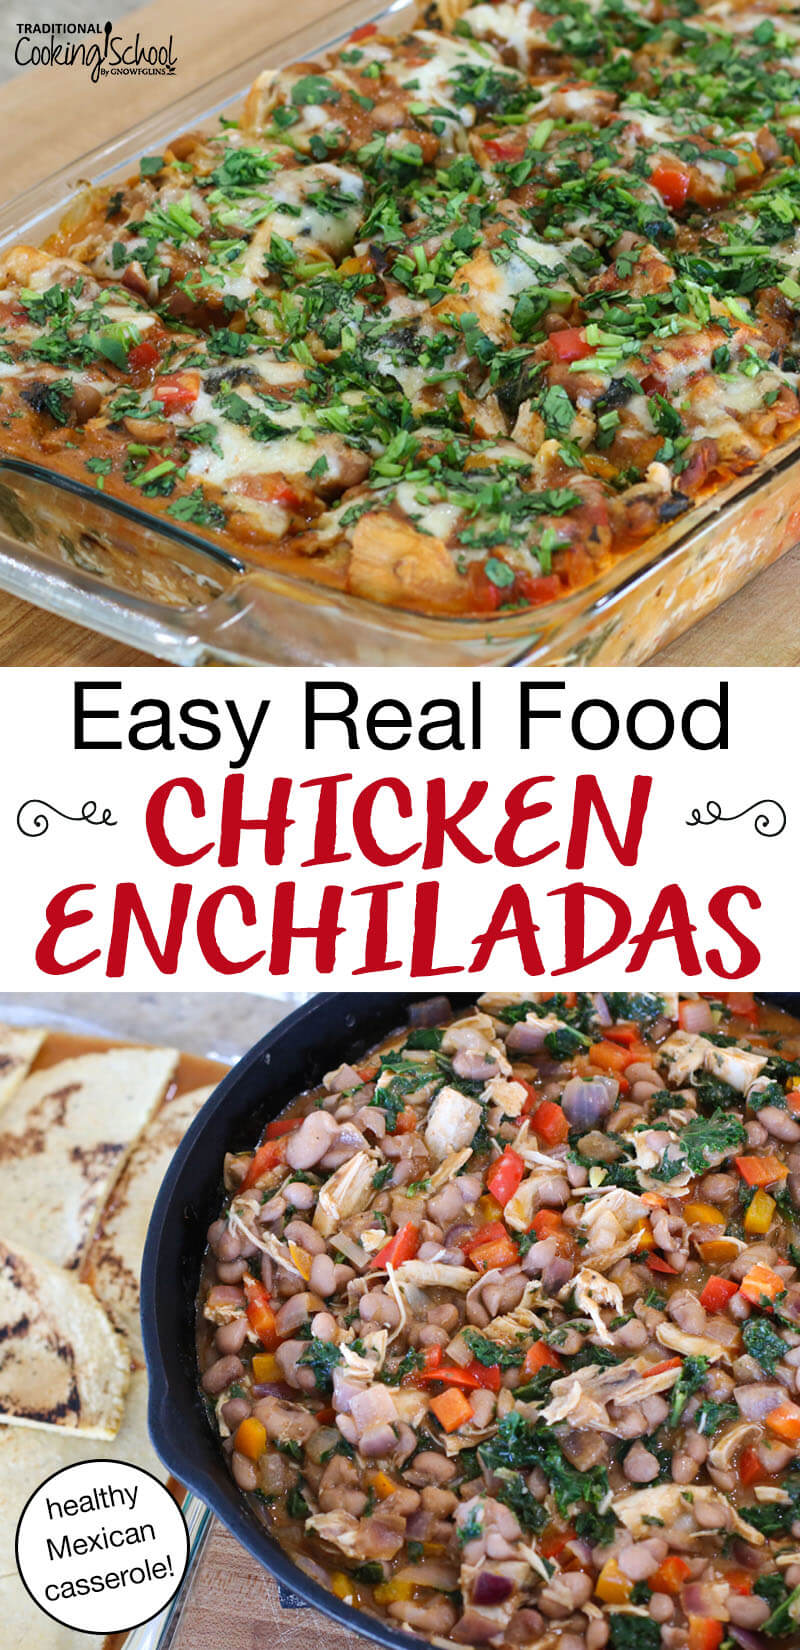 "photo collage of making enchilada casserole with text overlay: ""Easy Real Food Chicken Enchiladas (healthy Mexican casserole!)"""